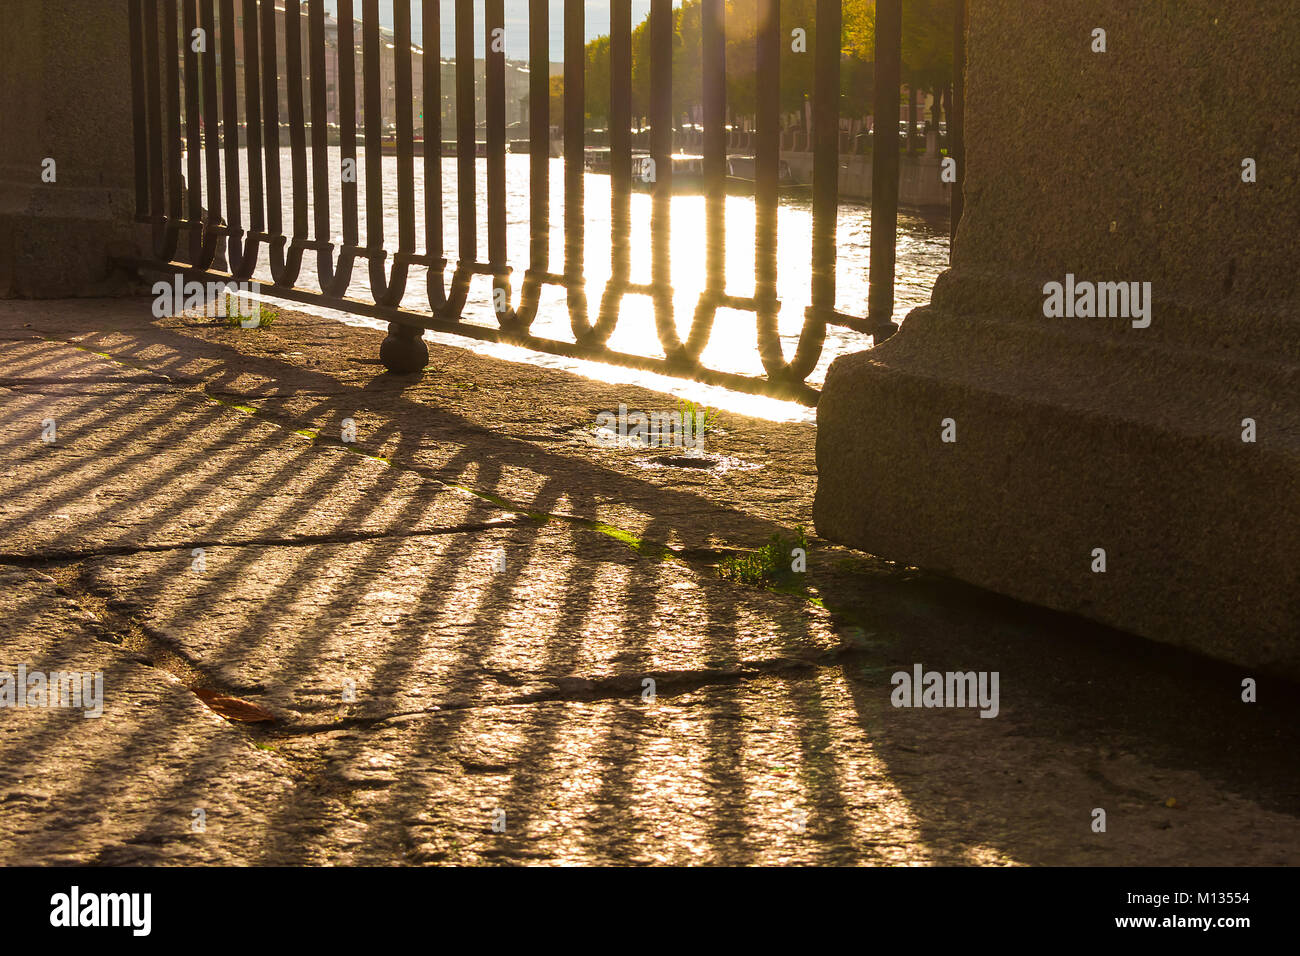 A grate of the fence of the granite embankment and its shadow on the pavement closeup in sunny day, Saint Petersburg, - Stock Image